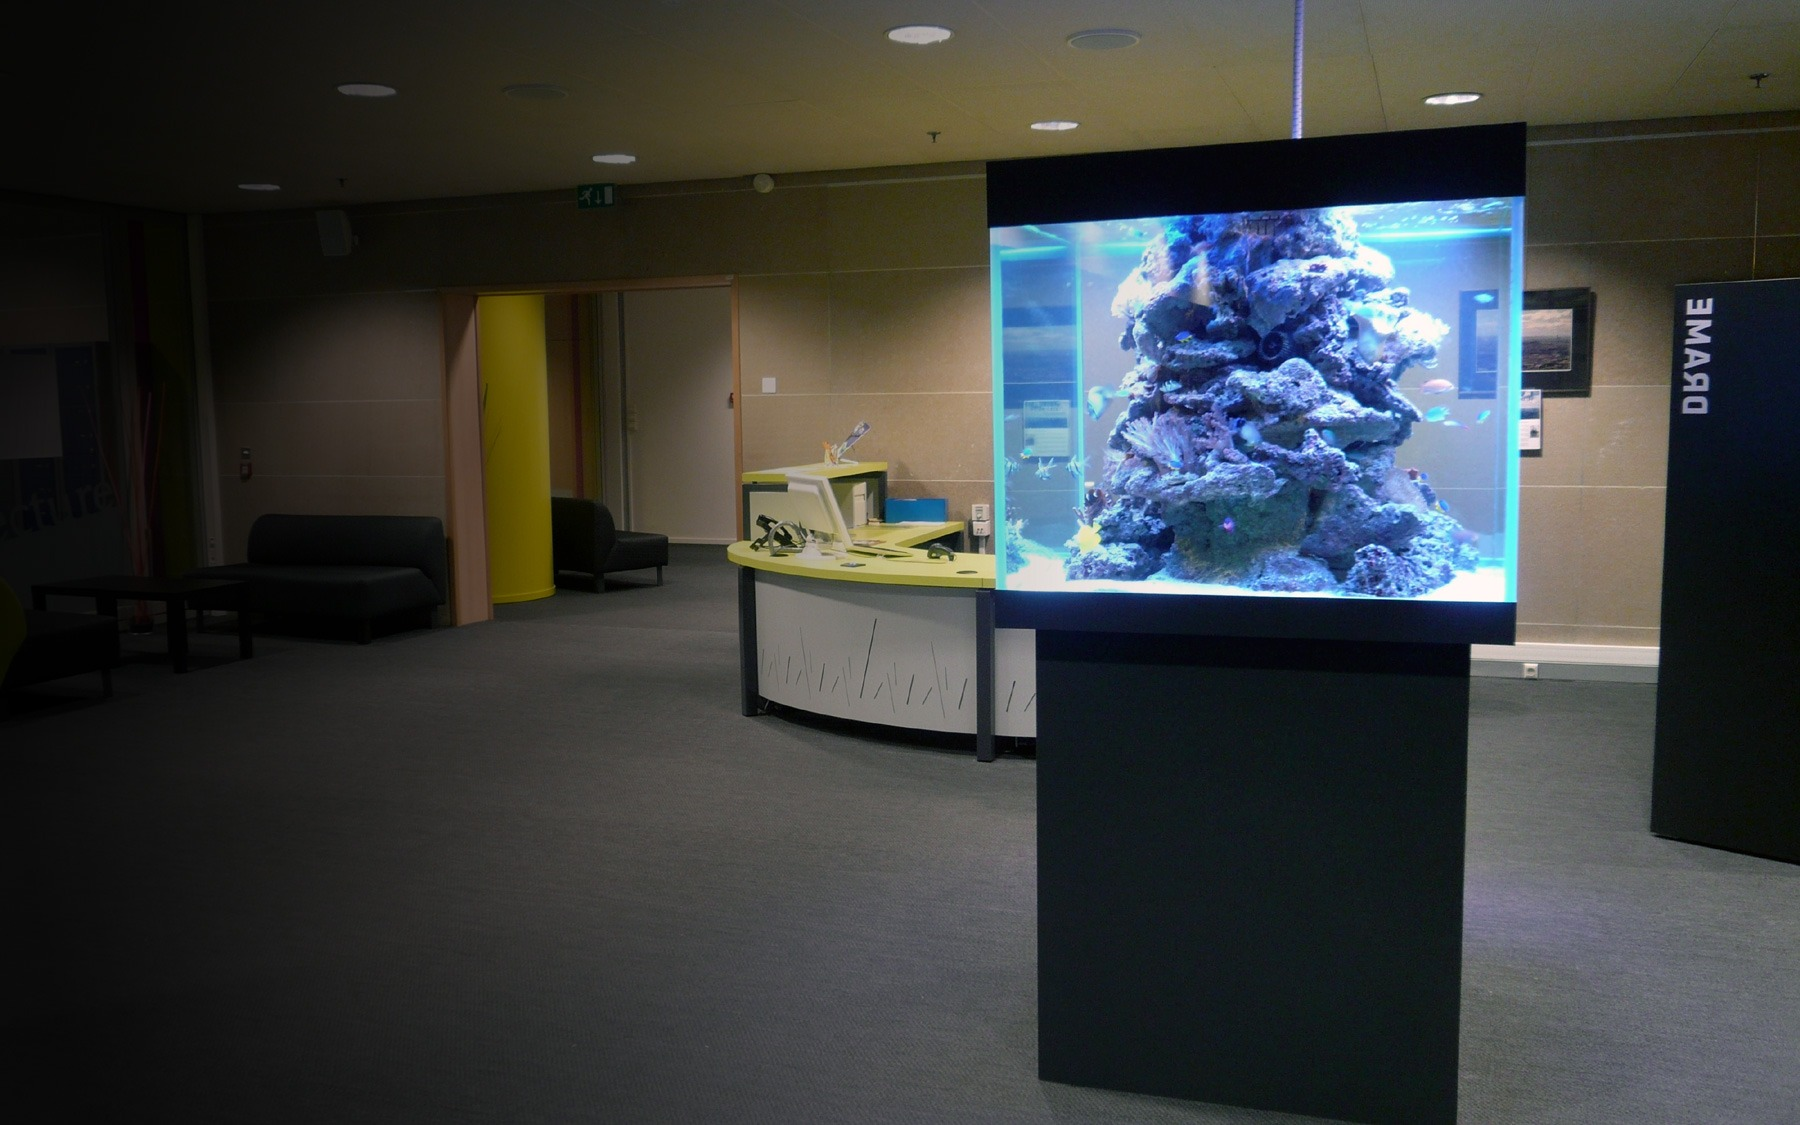 Aquarium sur mesure dans une m diath que oc an d 39 interieur for Aquarium interieur